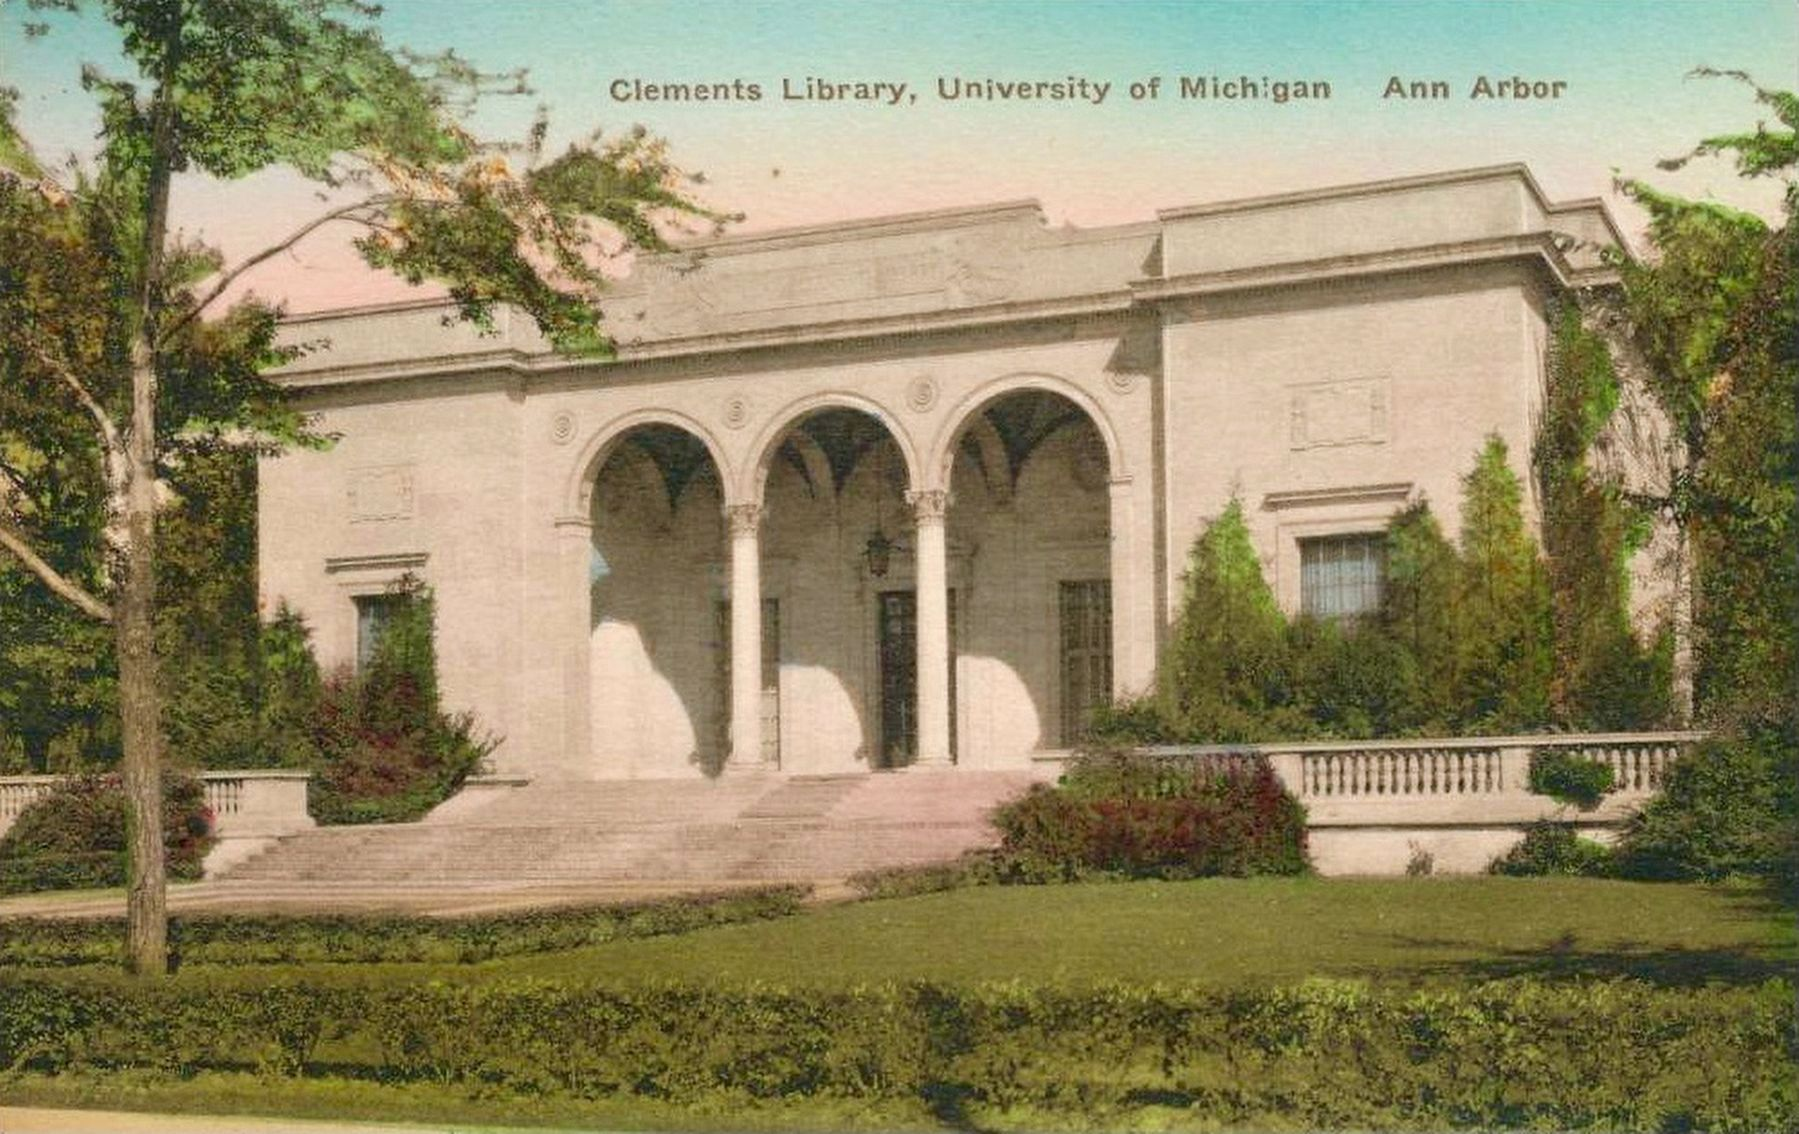 <i>Clements Library, University of Michigan &nbsp; Ann Arbor</i> image. Click for full size.